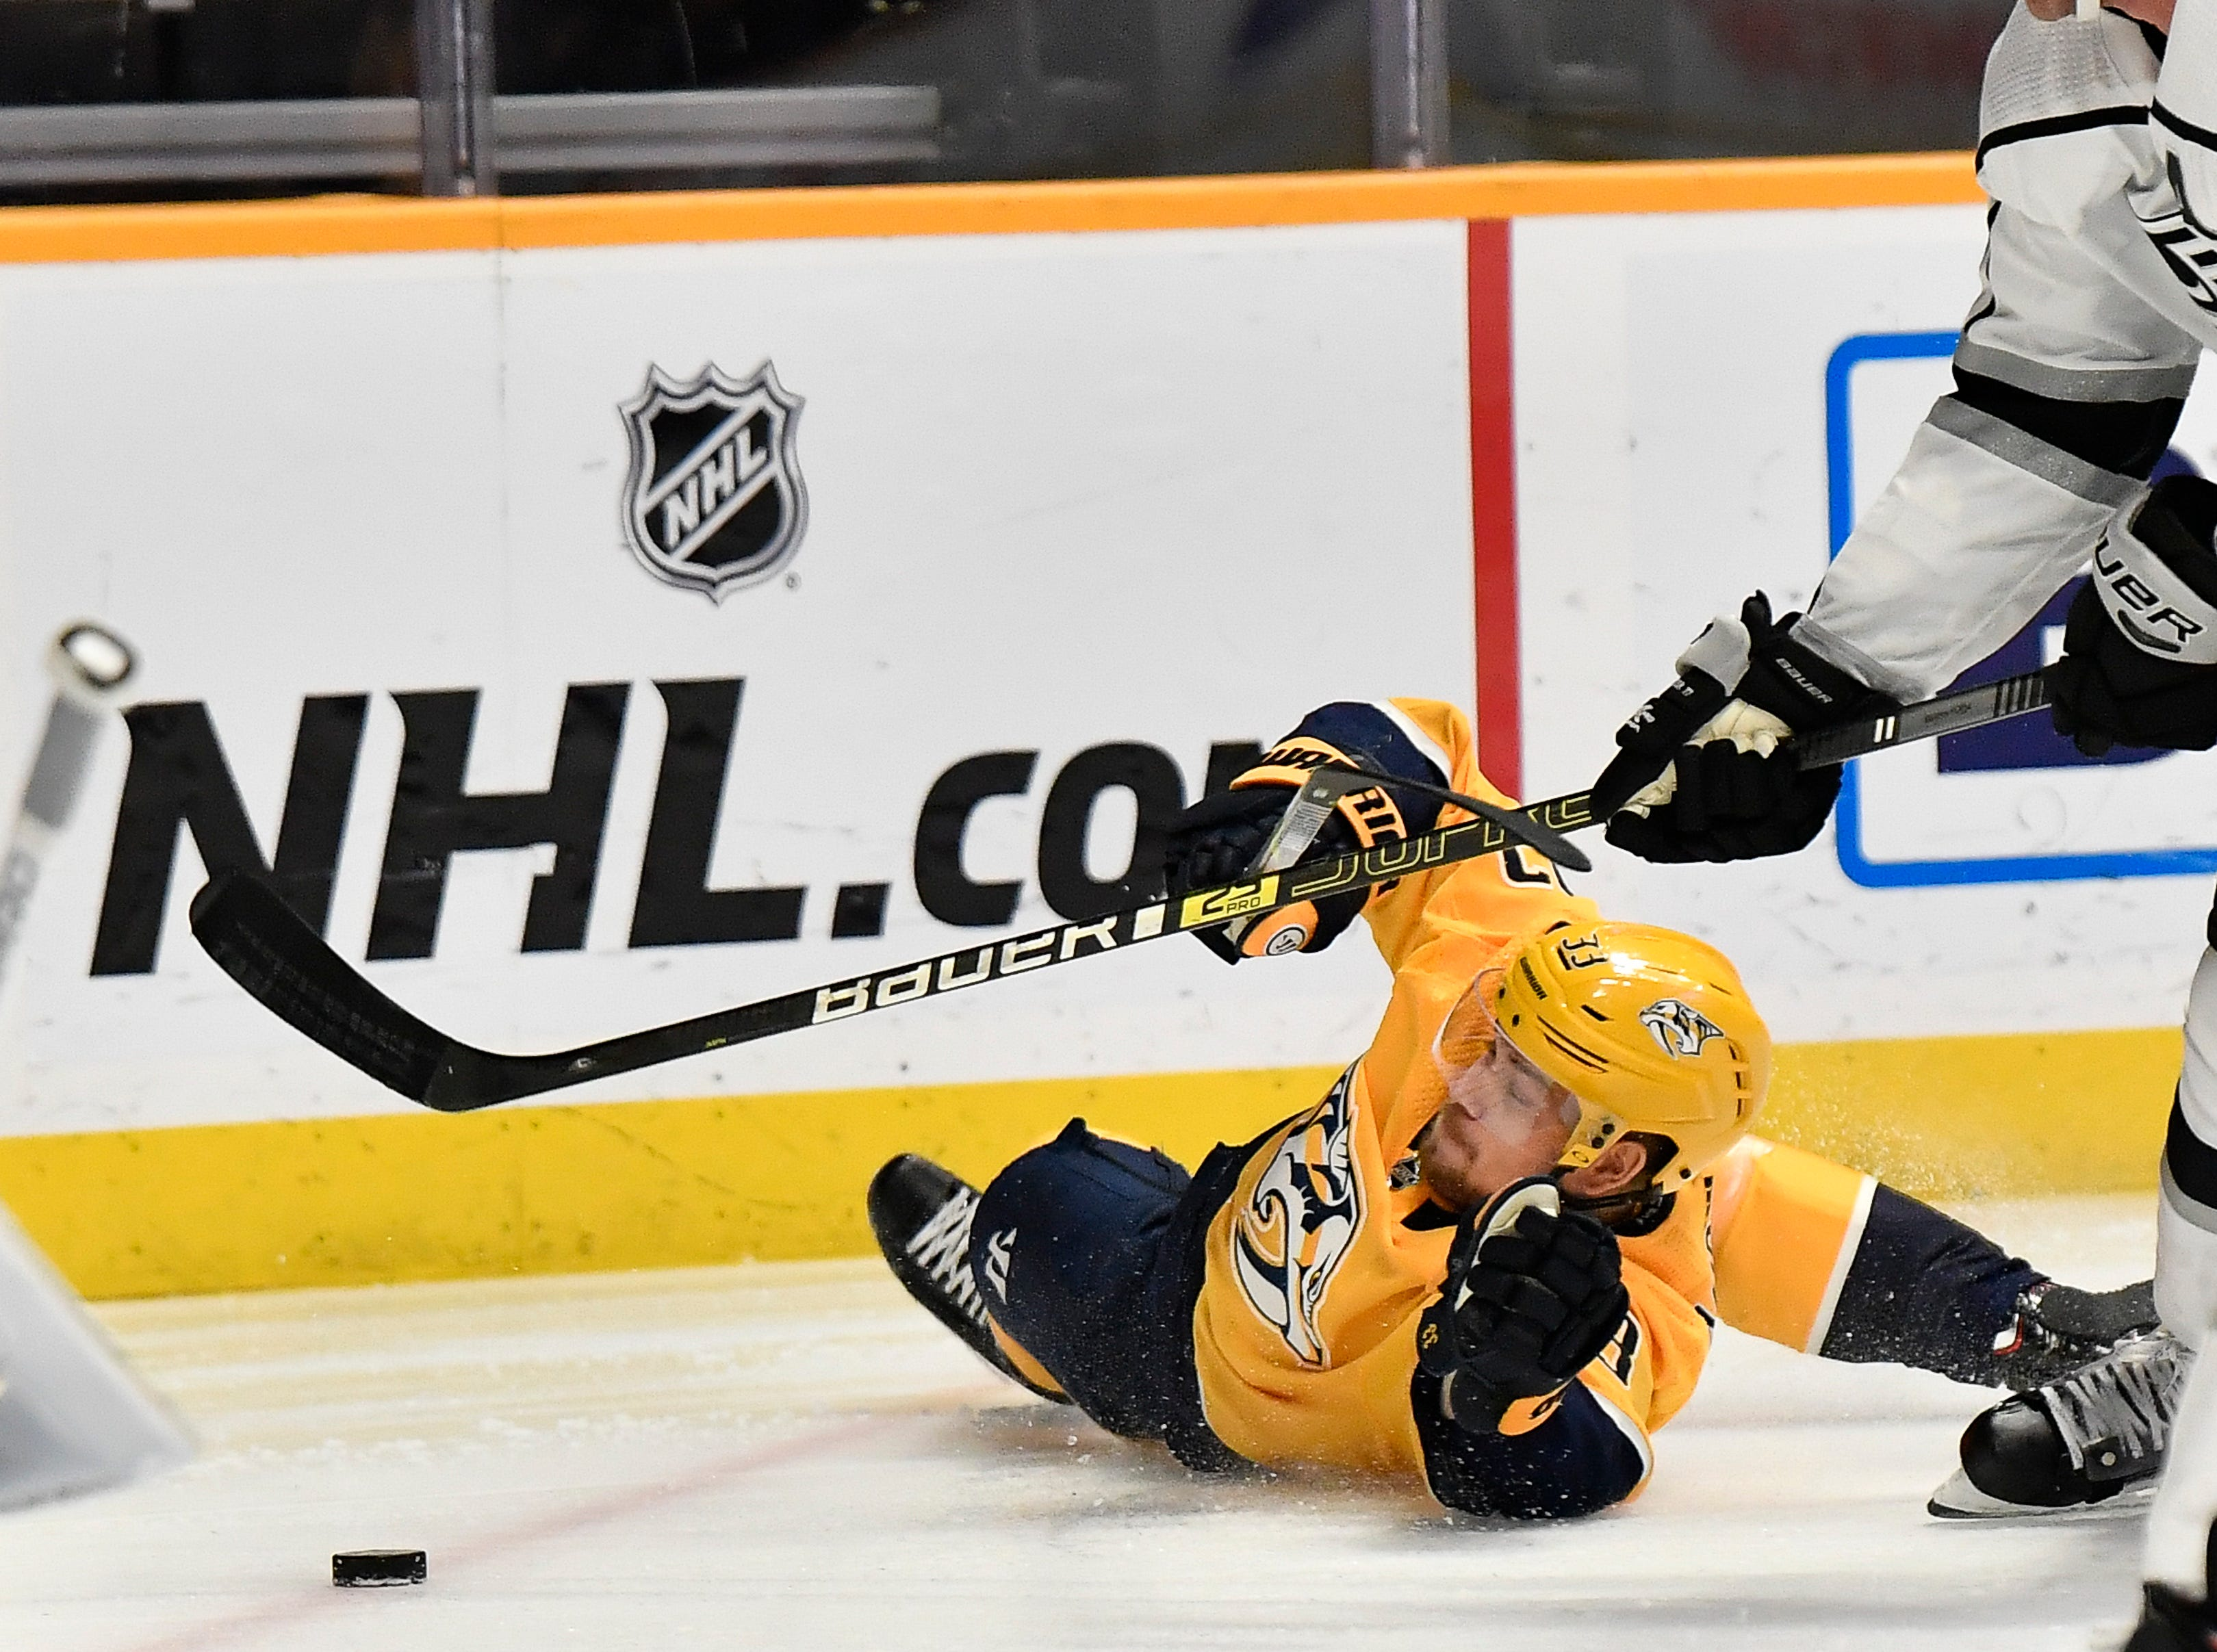 Predators right wing Viktor Arvidsson (33) falls to the ice as he attacks the goal against the Kings during the first period at Bridgestone Arena Thursday, Feb. 21, 2019 in Nashville, Tenn.